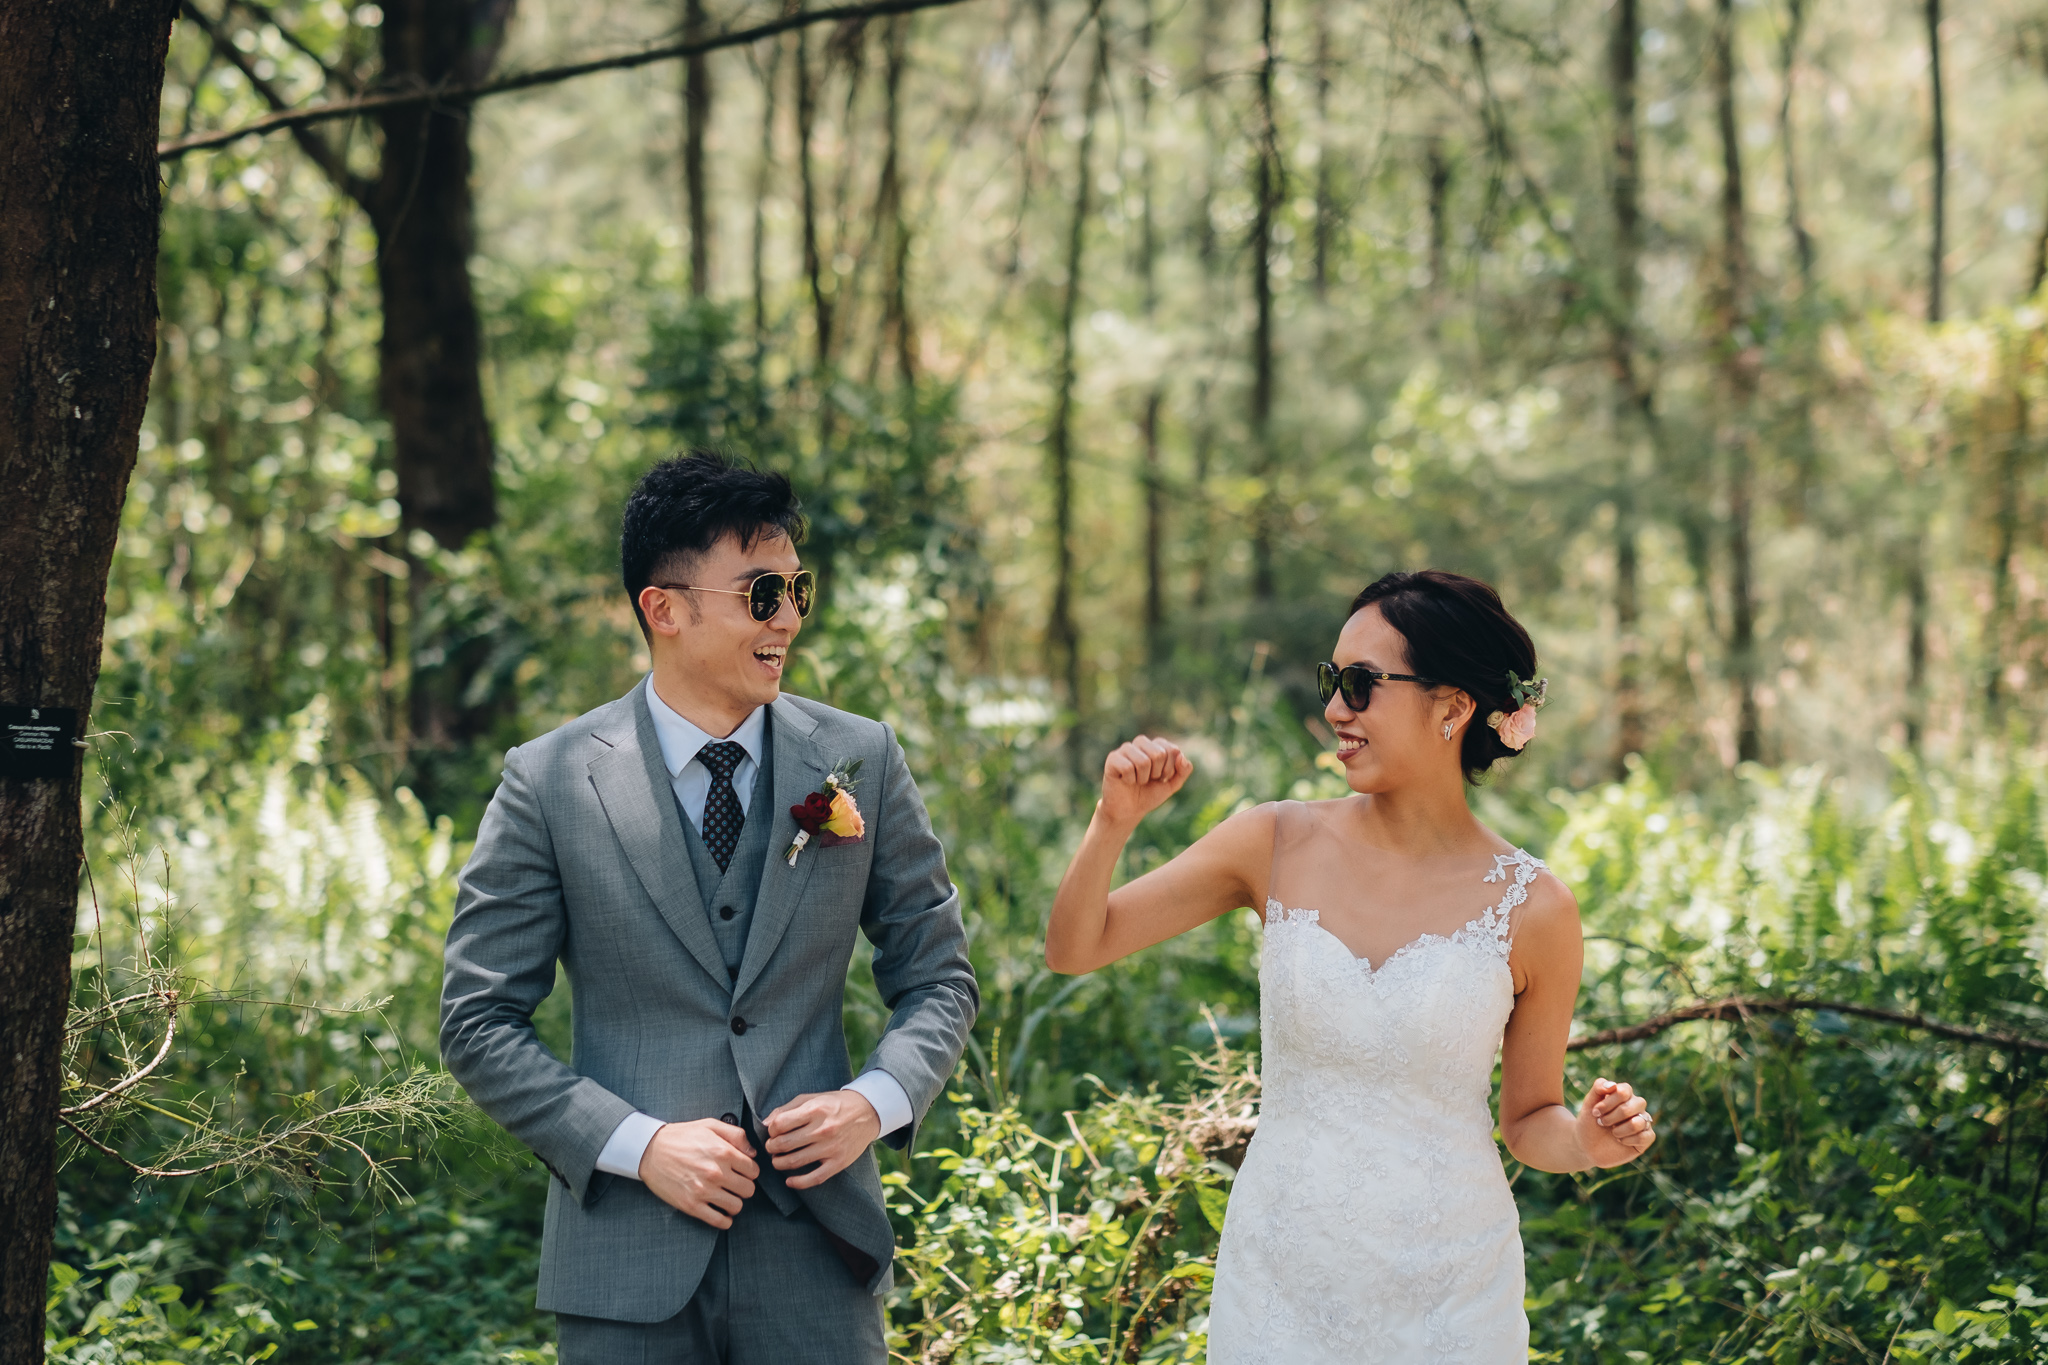 Kenneth & Lixin Pre-Wed (resized for sharing) - 132.jpg